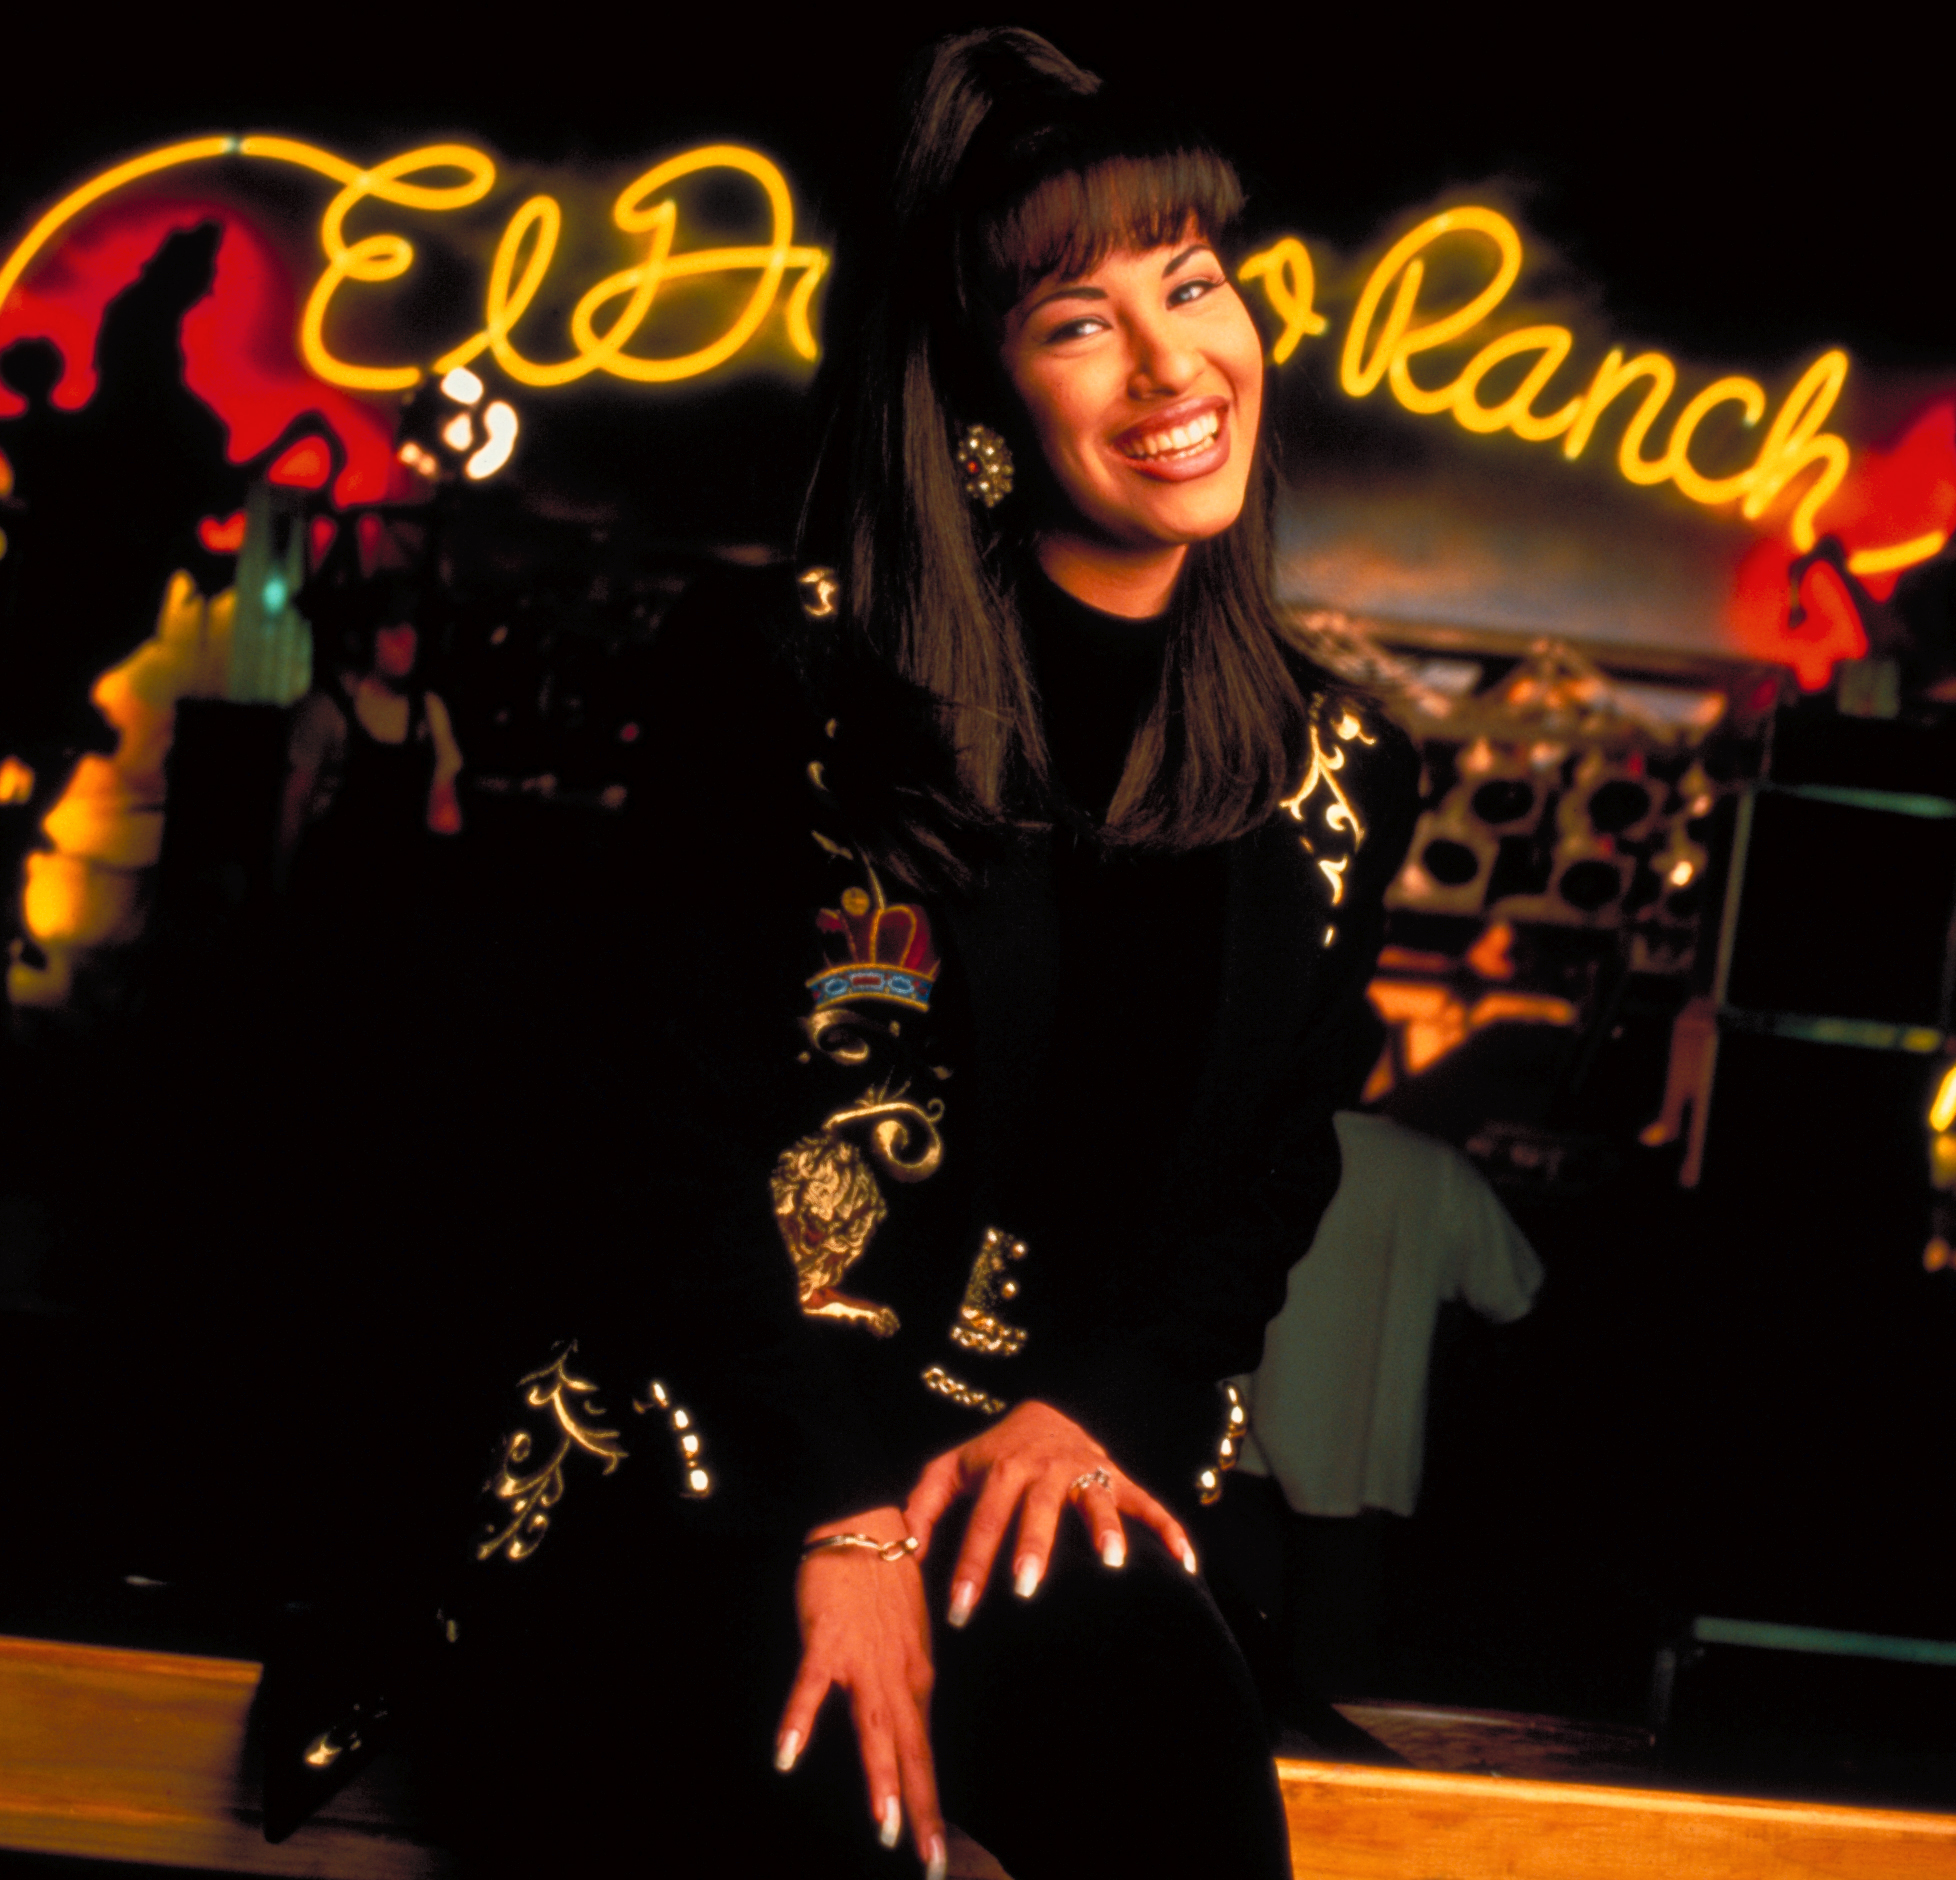 Selena-inspired Zumba session with movie screening planned to celebrate Hispanic Heritage Month